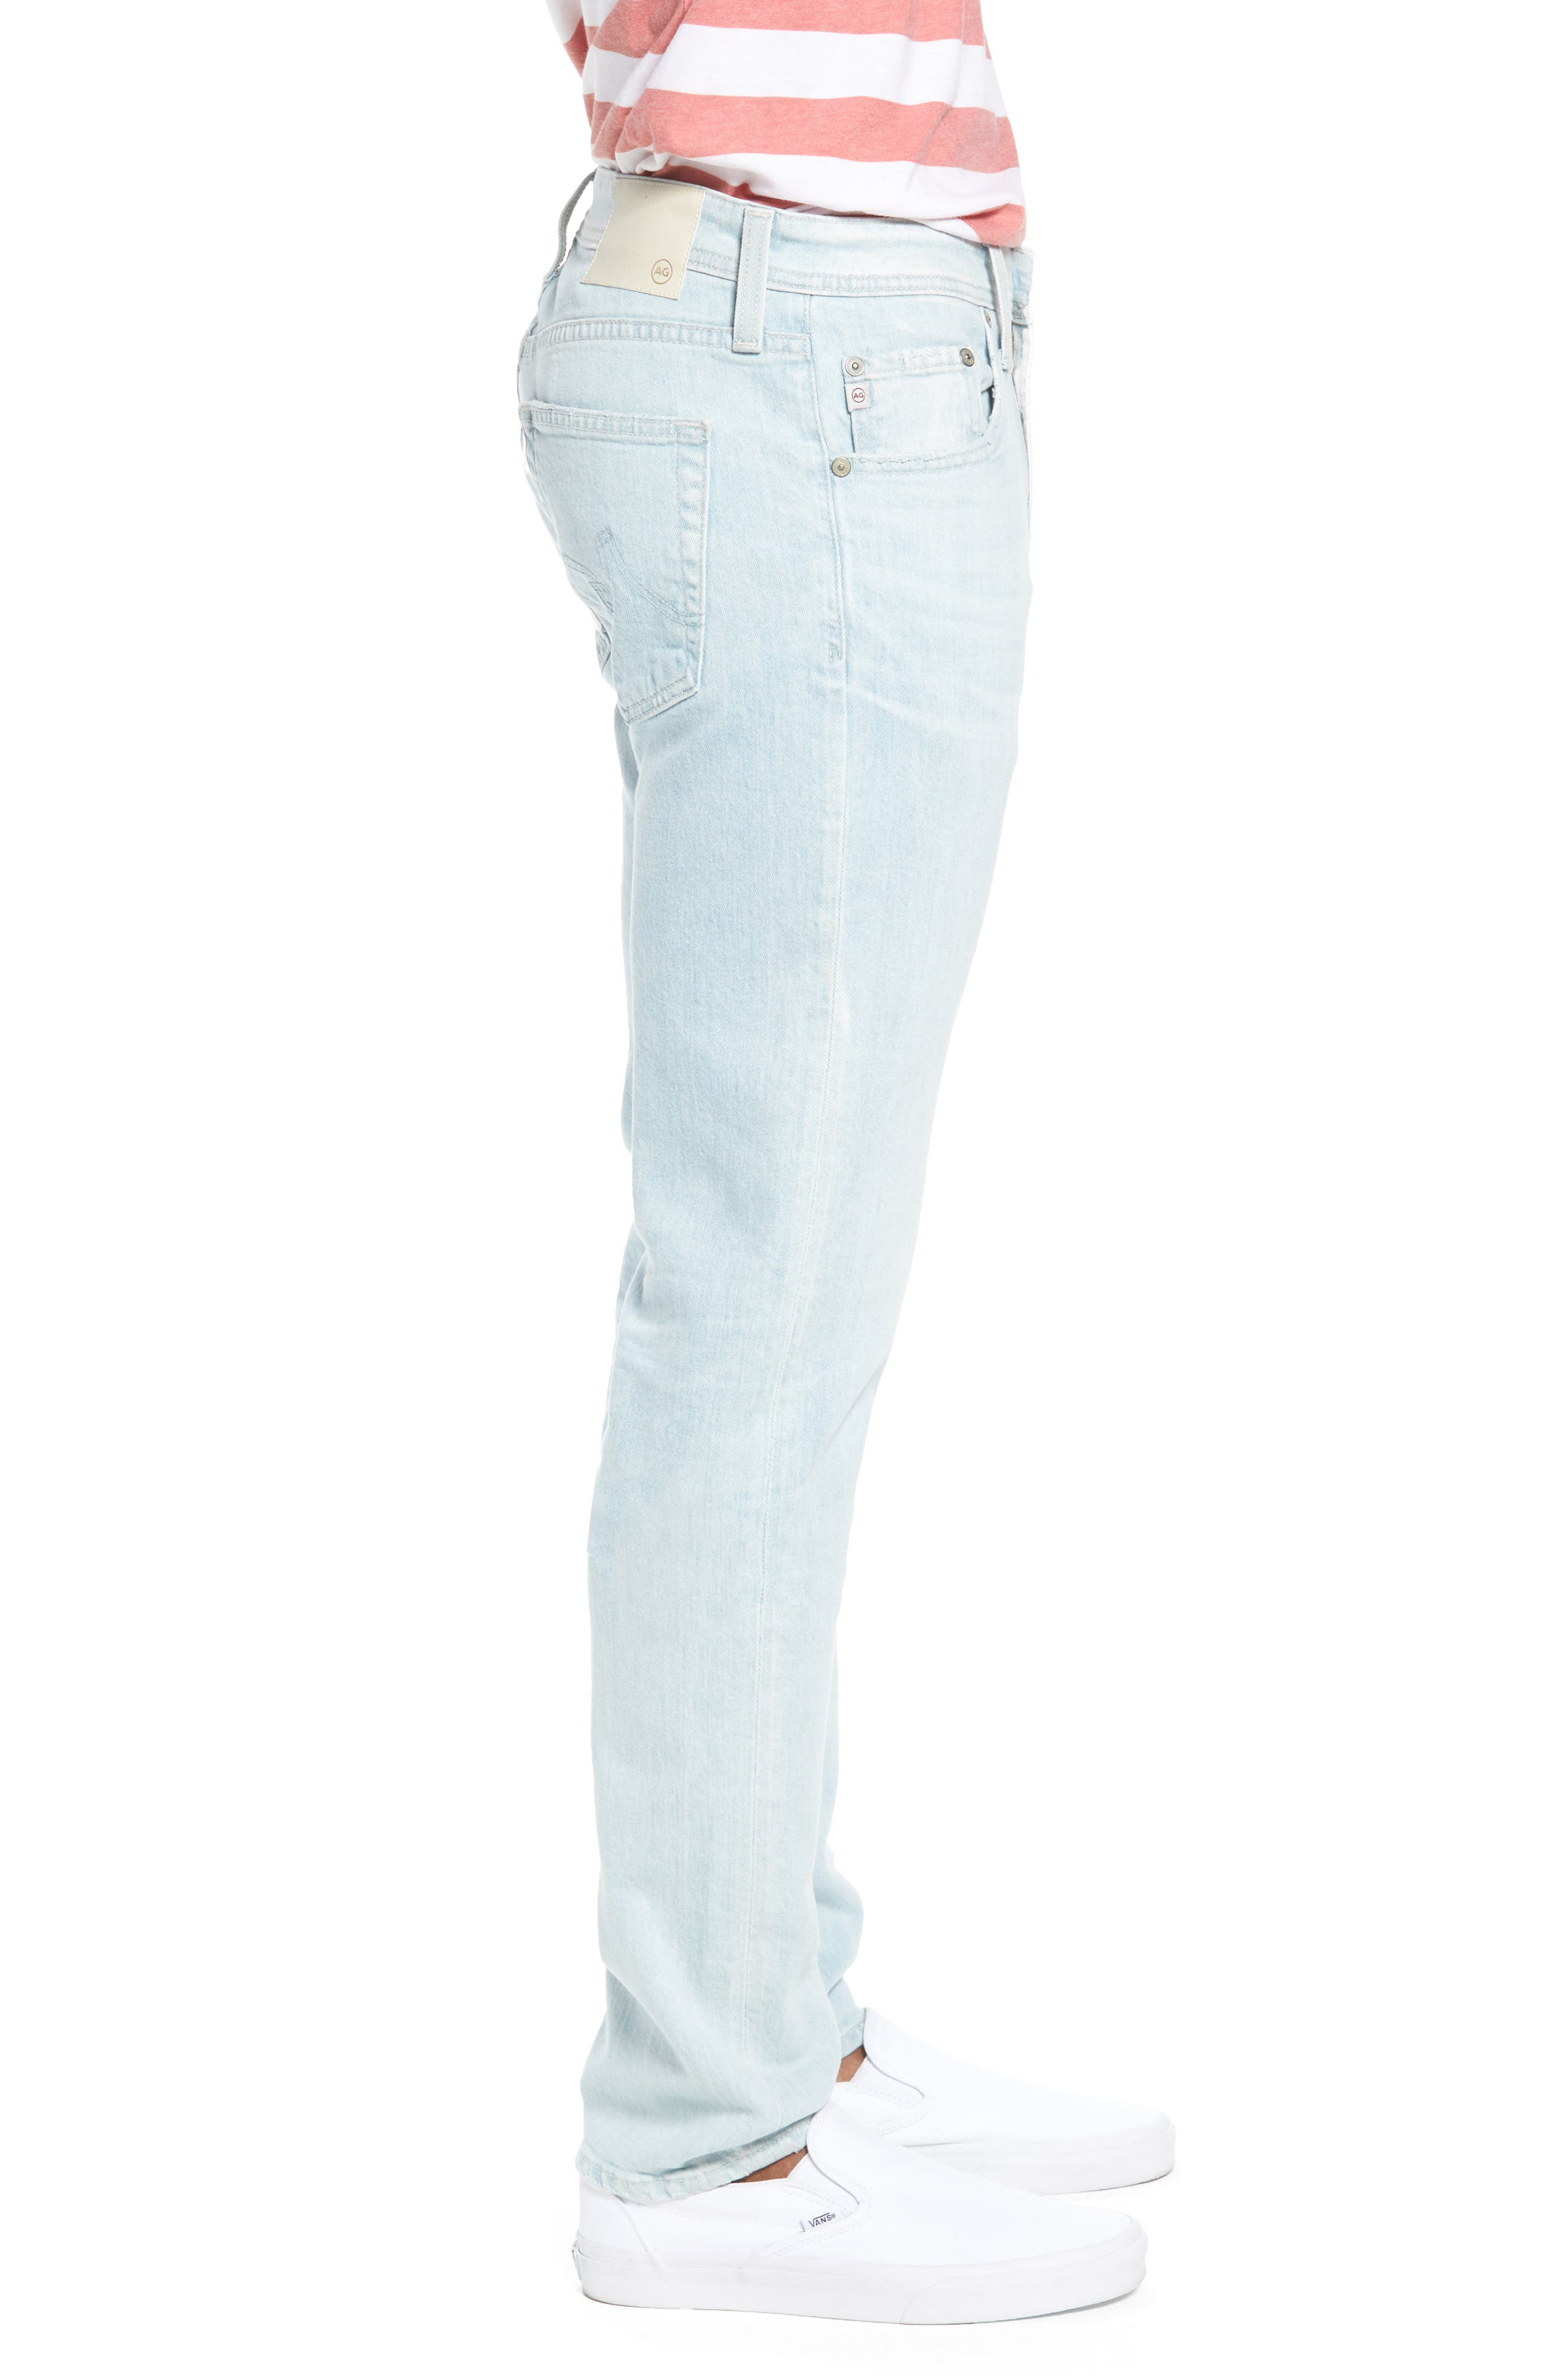 Dylan Skinny Fit Jeans,                             Alternate thumbnail 3, color,                             28 YEARS SALT MIST